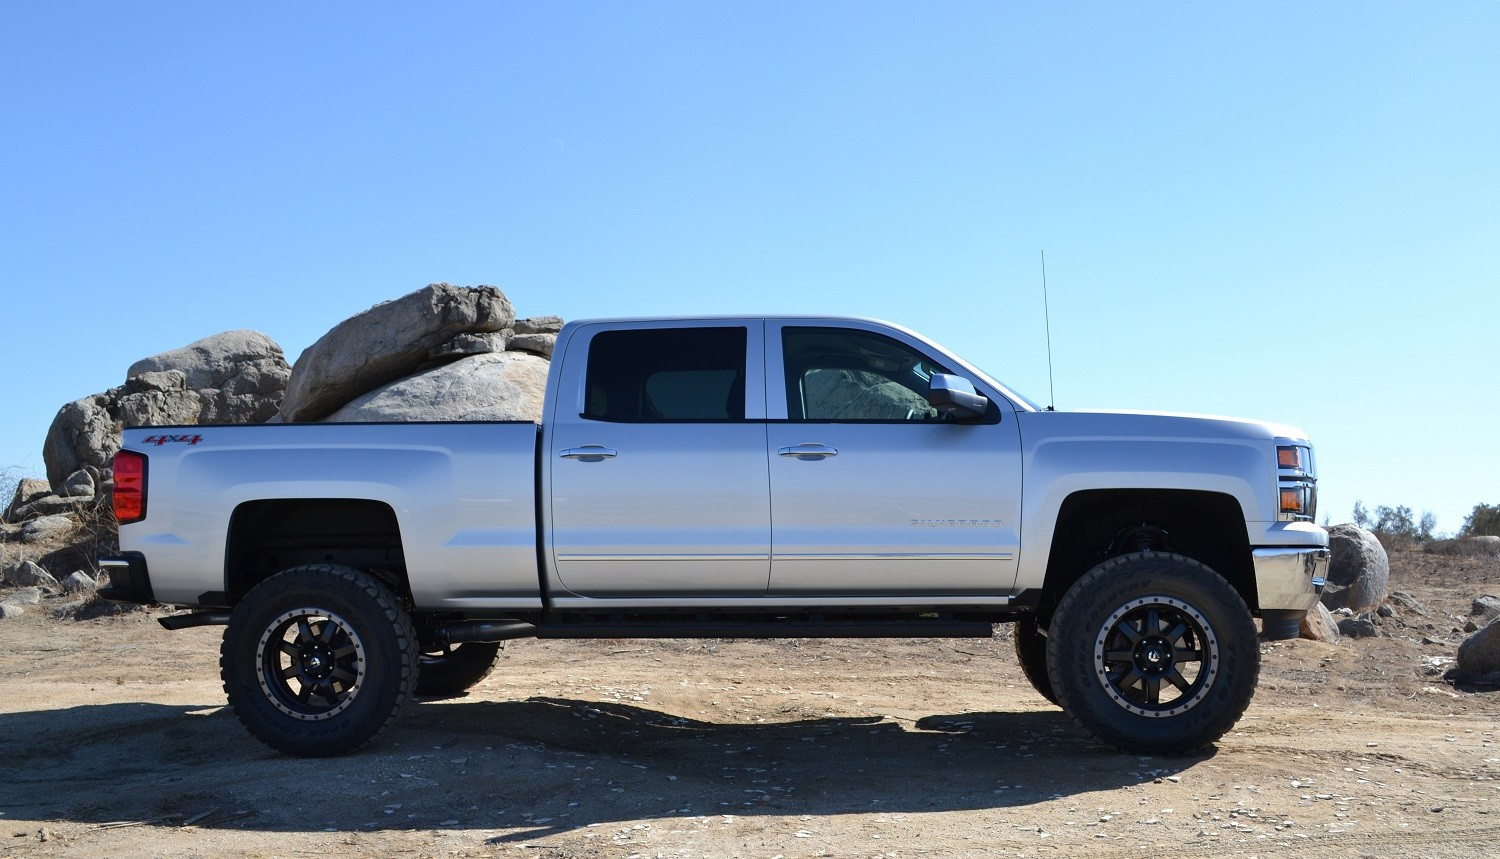 CST Performance Suspension / Lift Kits for 2014-2018 Chevy